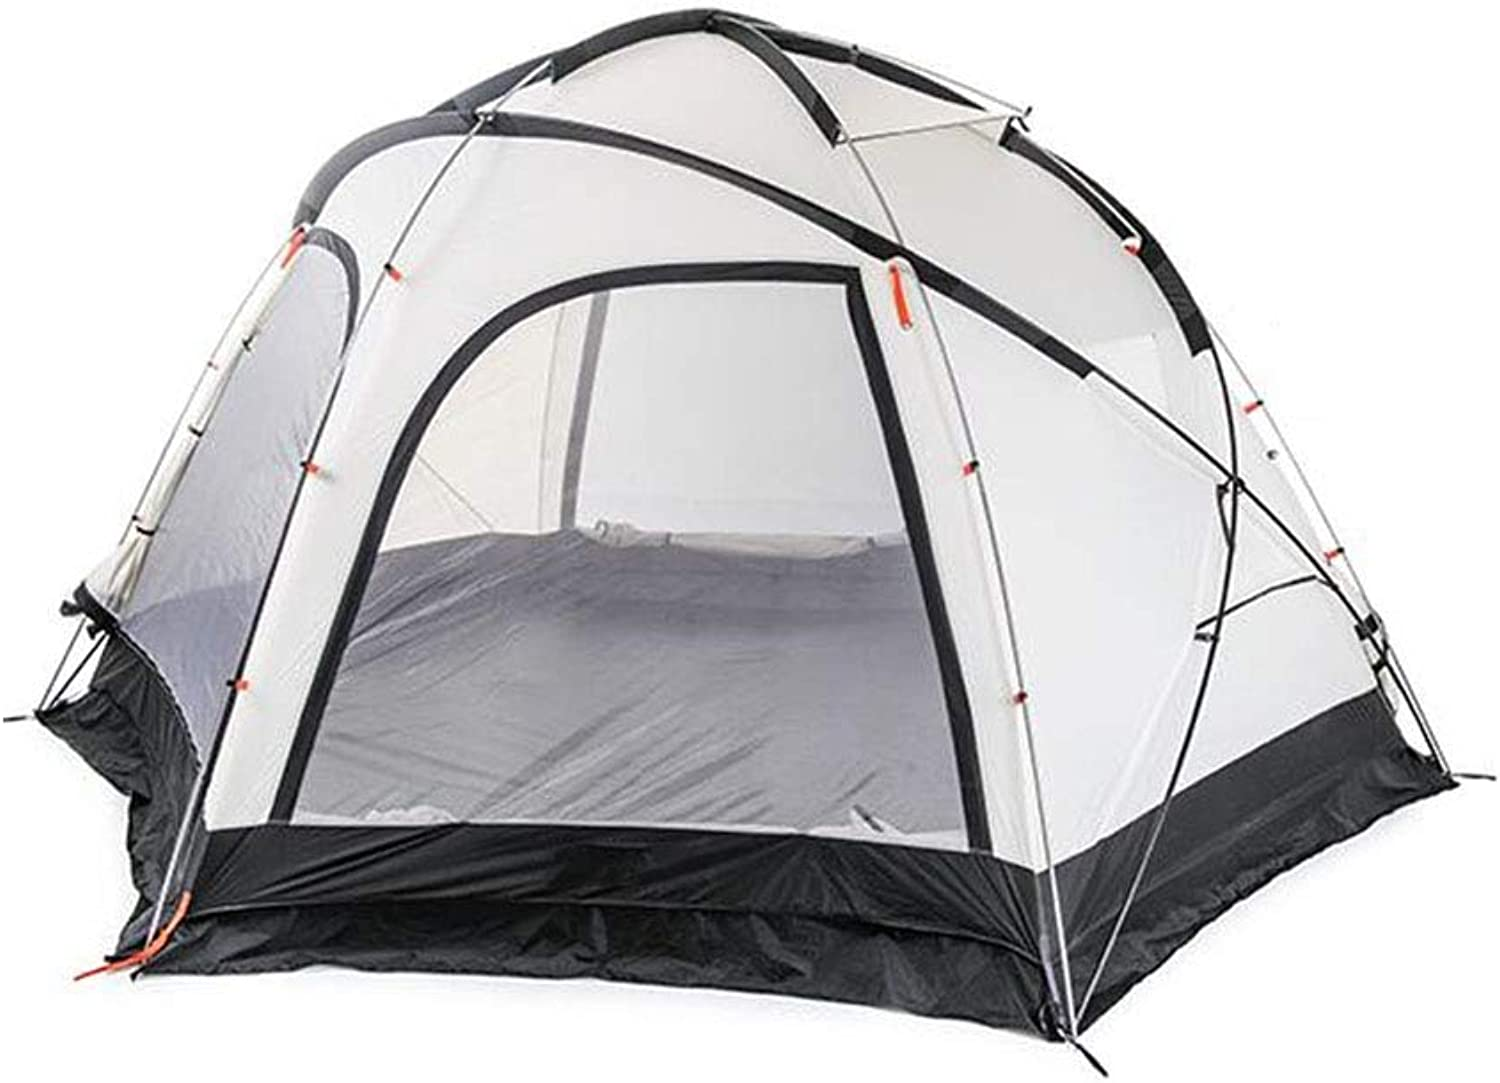 Anti-UV,SpaciousZelt, Outdoor wasserdichtes Zelt 5-8 Person Wandern Camping Waterproof OverGrößed Space Family Festival 4 Seasons Zelte,Gelb,400  345  213cm